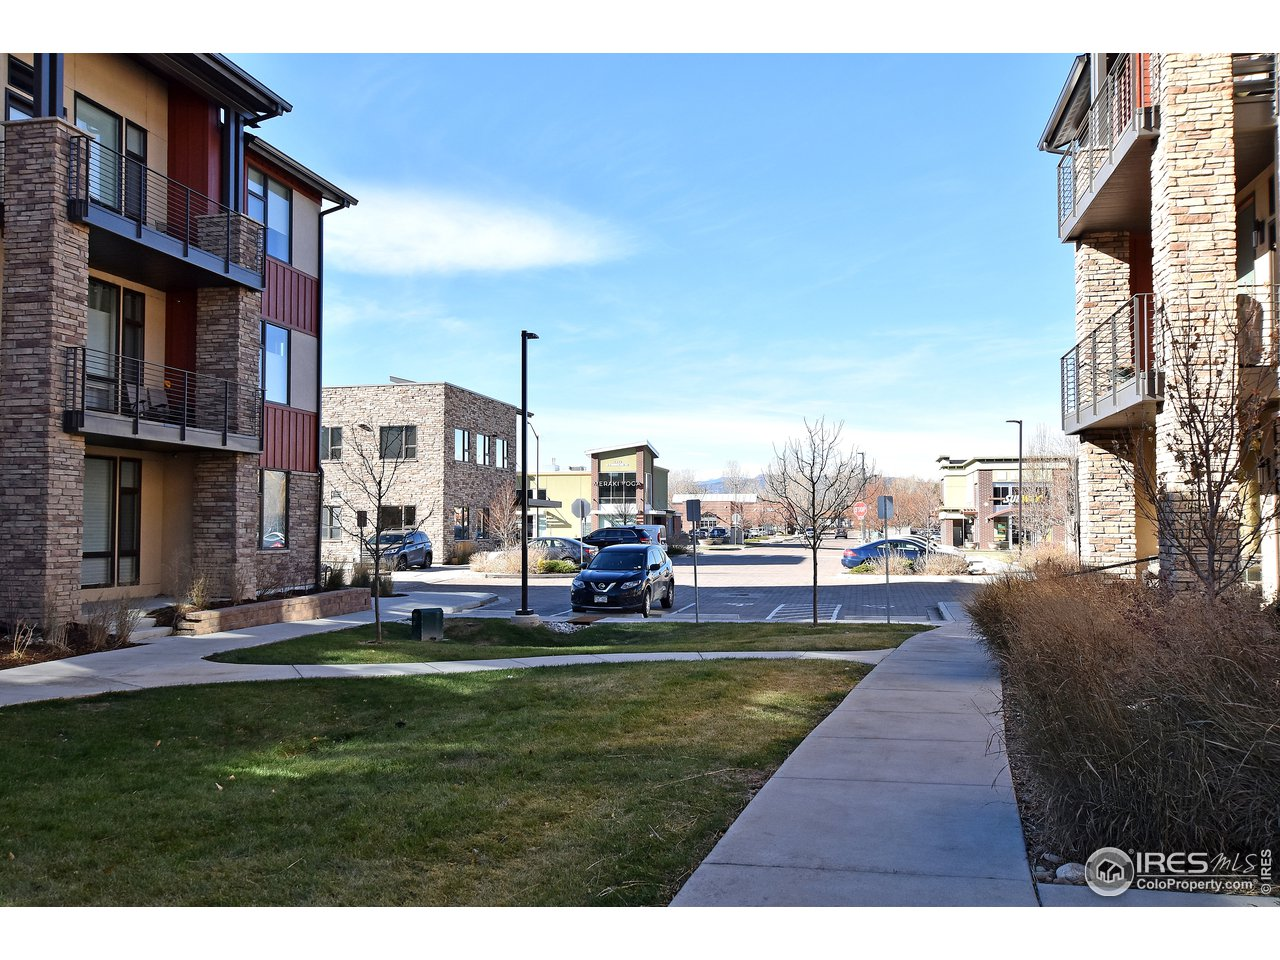 Steps away to shopping, bars, restaurants, transportation and bike trails! Live the good life in Rigden Farms